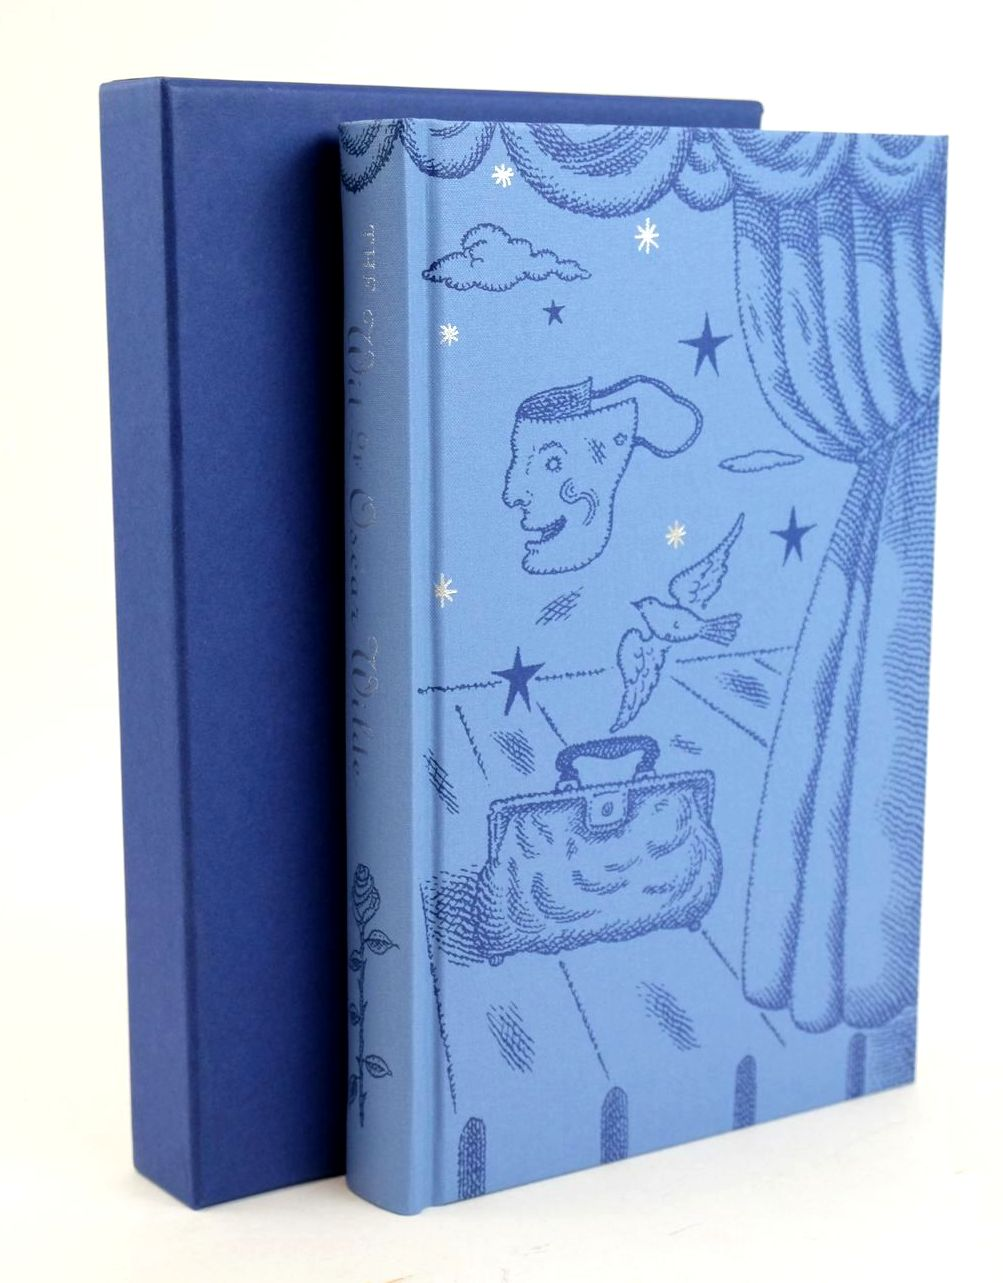 Photo of THE WIT OF OSCAR WILDE written by Wilde, Oscar illustrated by Beck, Ian Archie published by Folio Society (STOCK CODE: 1319157)  for sale by Stella & Rose's Books